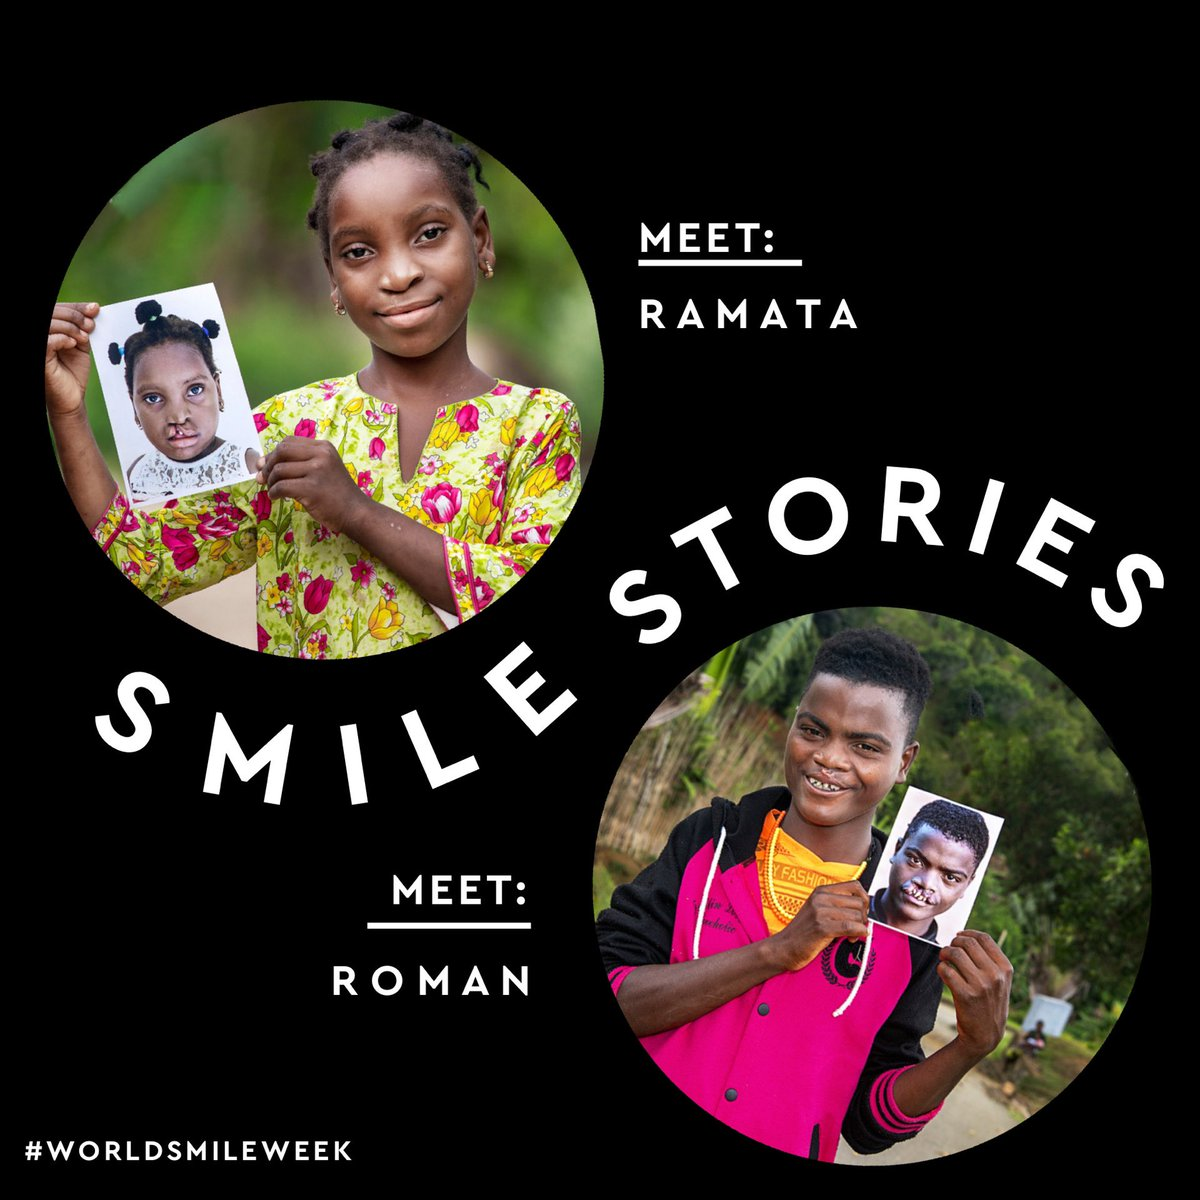 S M I L E   S T O R I E S — in honor of #WorldSmileDay this Friday we're taking the time to celebrate all week long. To shine the light on healthy & beautiful smiles around the world. To create the space where we all feel welcome to share our smile story.  @operationsmile